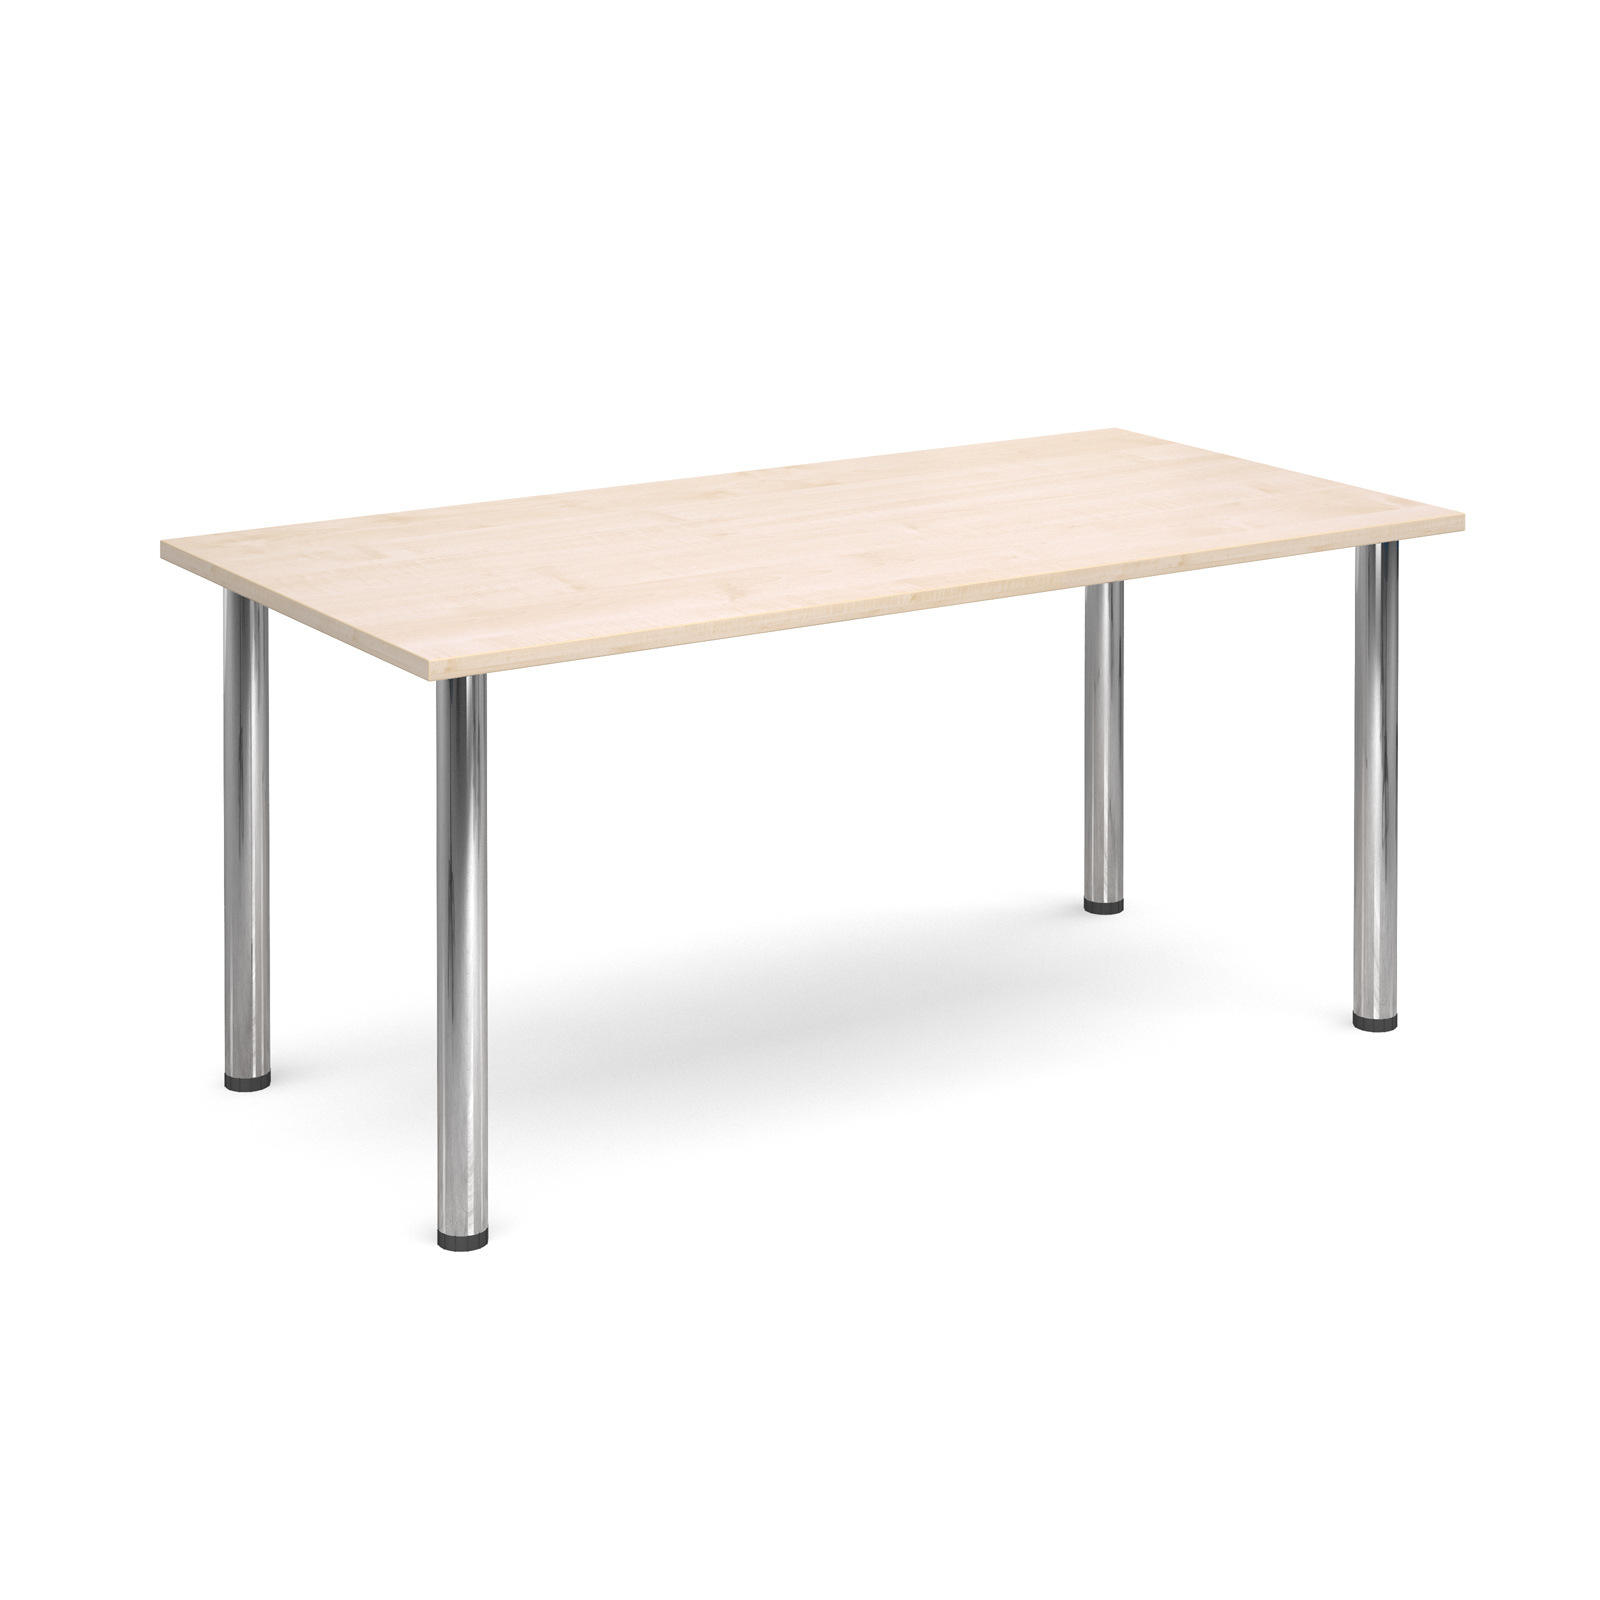 1600 Flexi table Chrome radial Legs-Maple